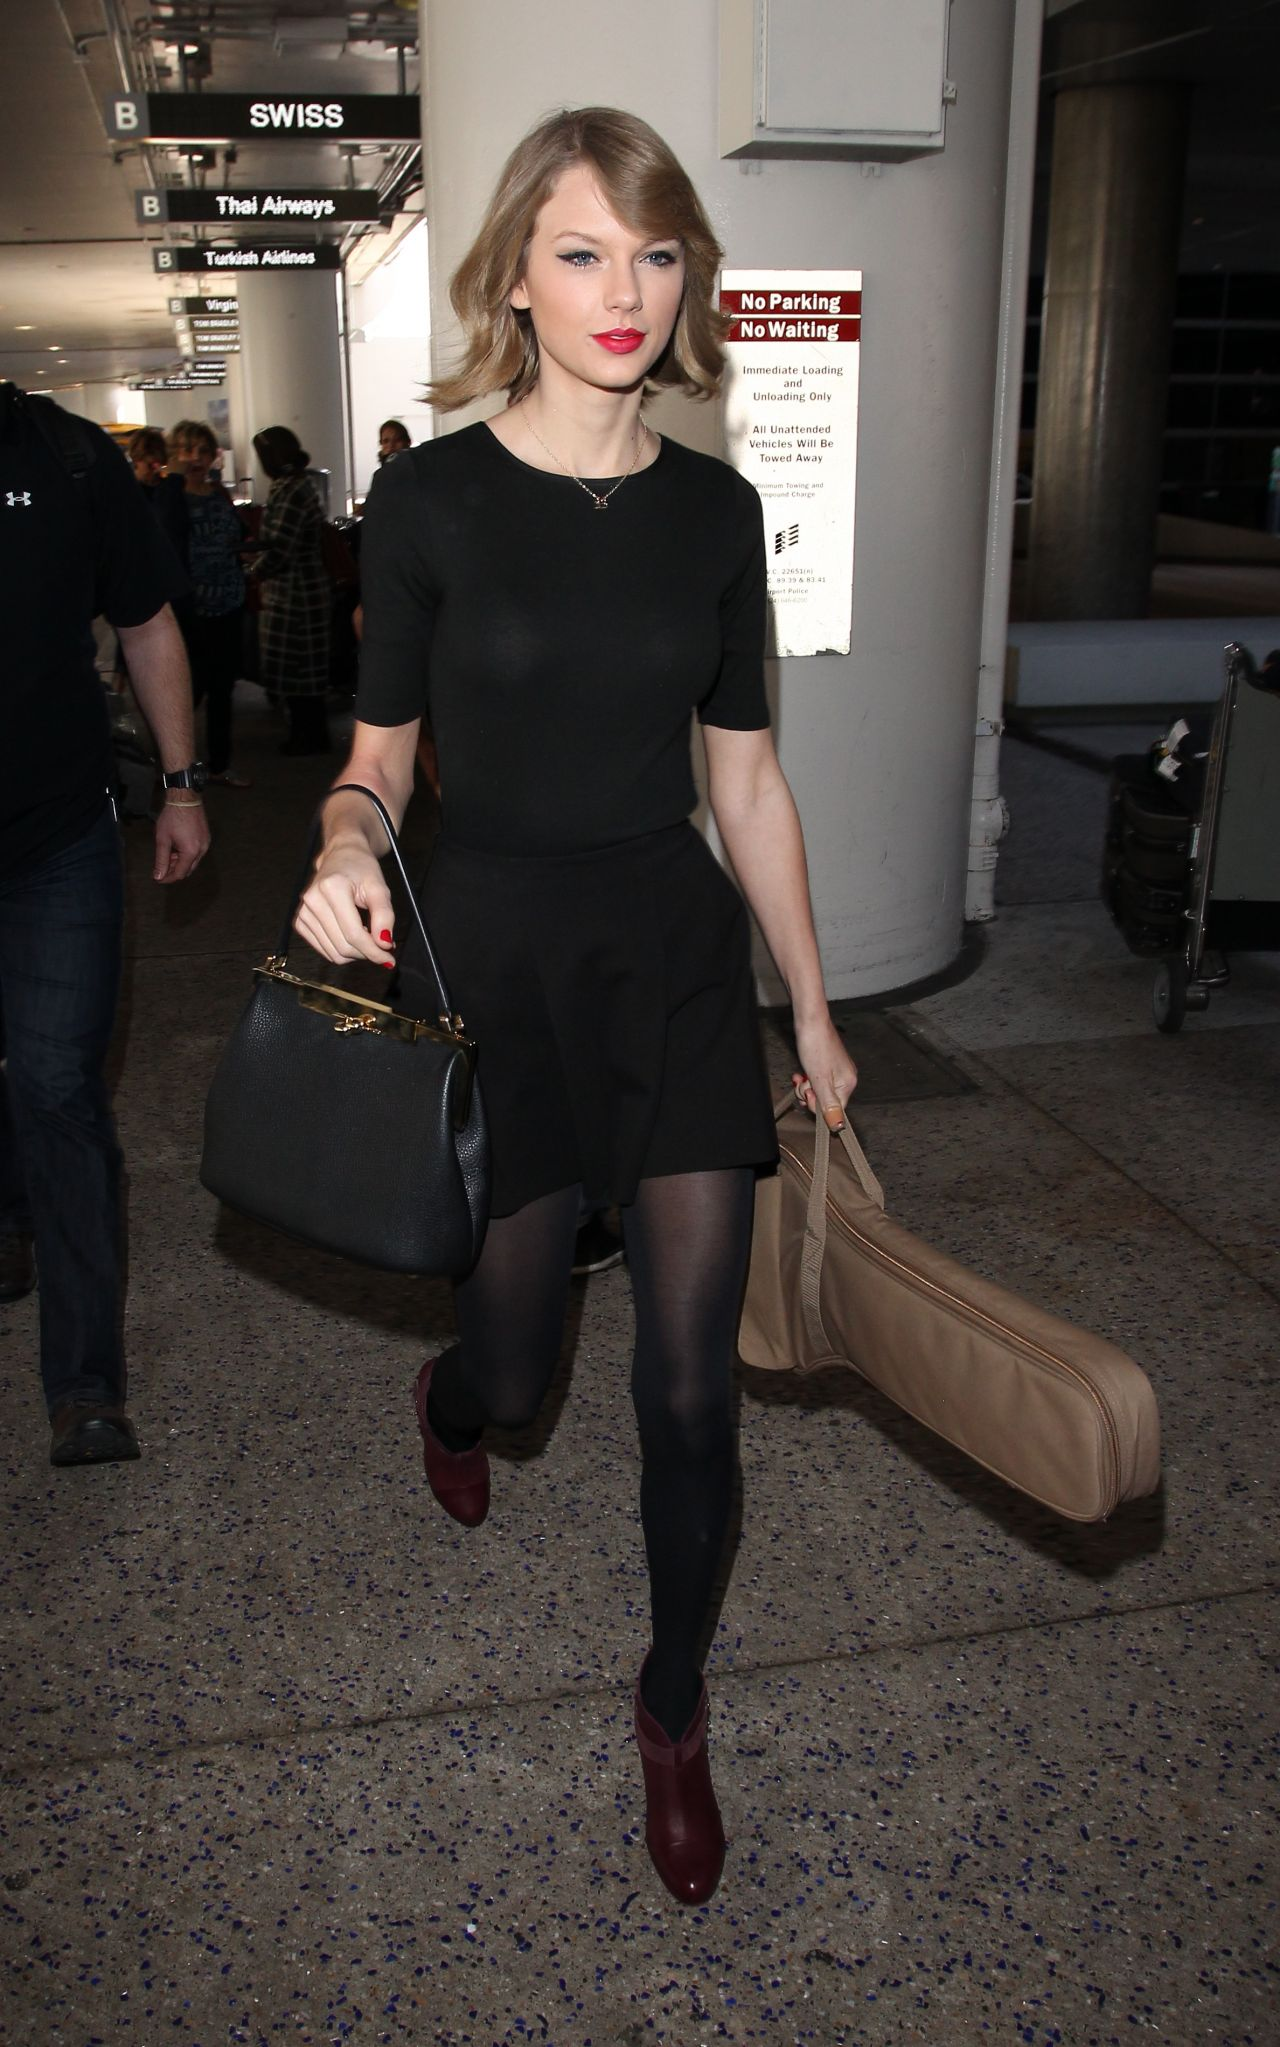 Taylor Swift New Hair Style - LAX Airport - February 2014